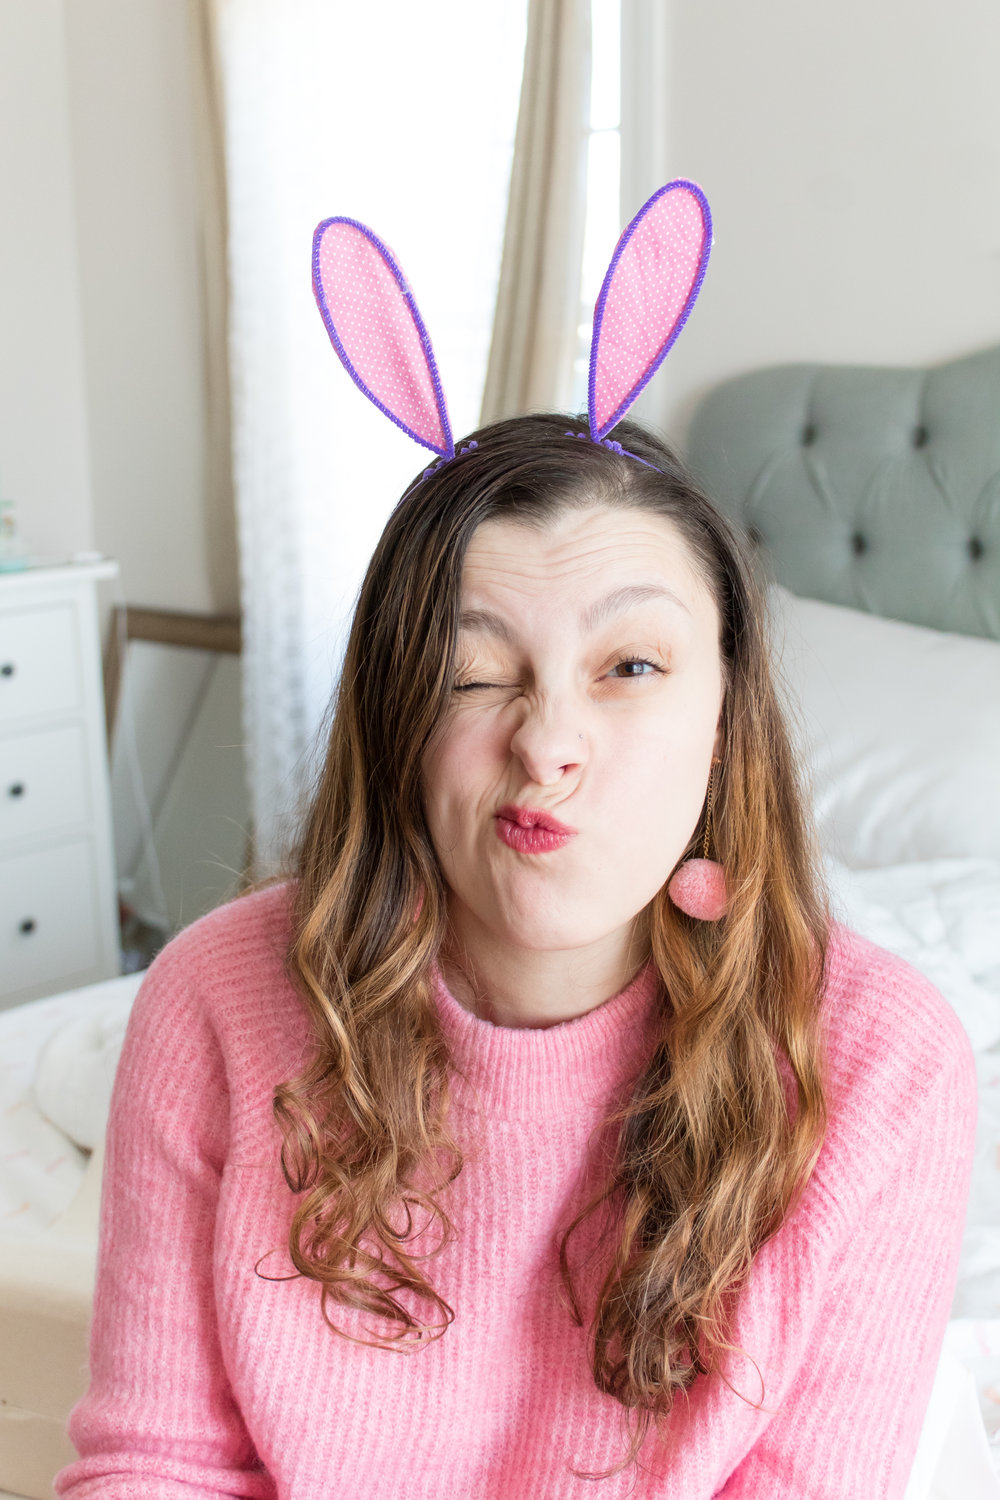 Make these really easy (no sew!) DIY bunny ears headbands just in time for Easter! You probably have all the supplies on hand already! Check out the full DIY now to make a pair for yourself and your family! #eastercrafts #bunnyearsheadband #easterpartyideas